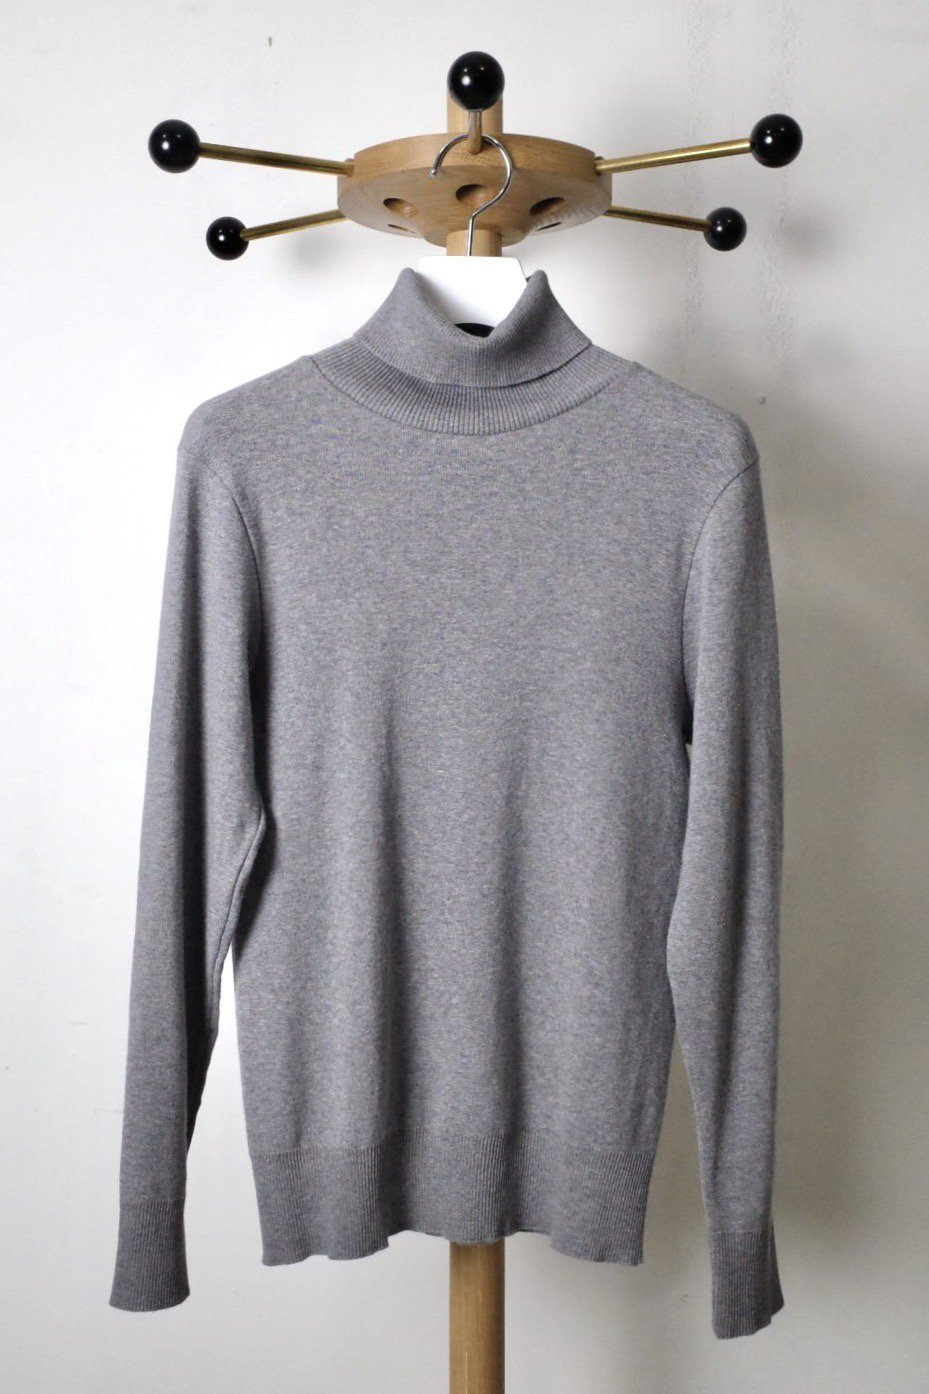 gicipi ジチピ-TURTLENECK TOPS-ANANAS-GRAY-